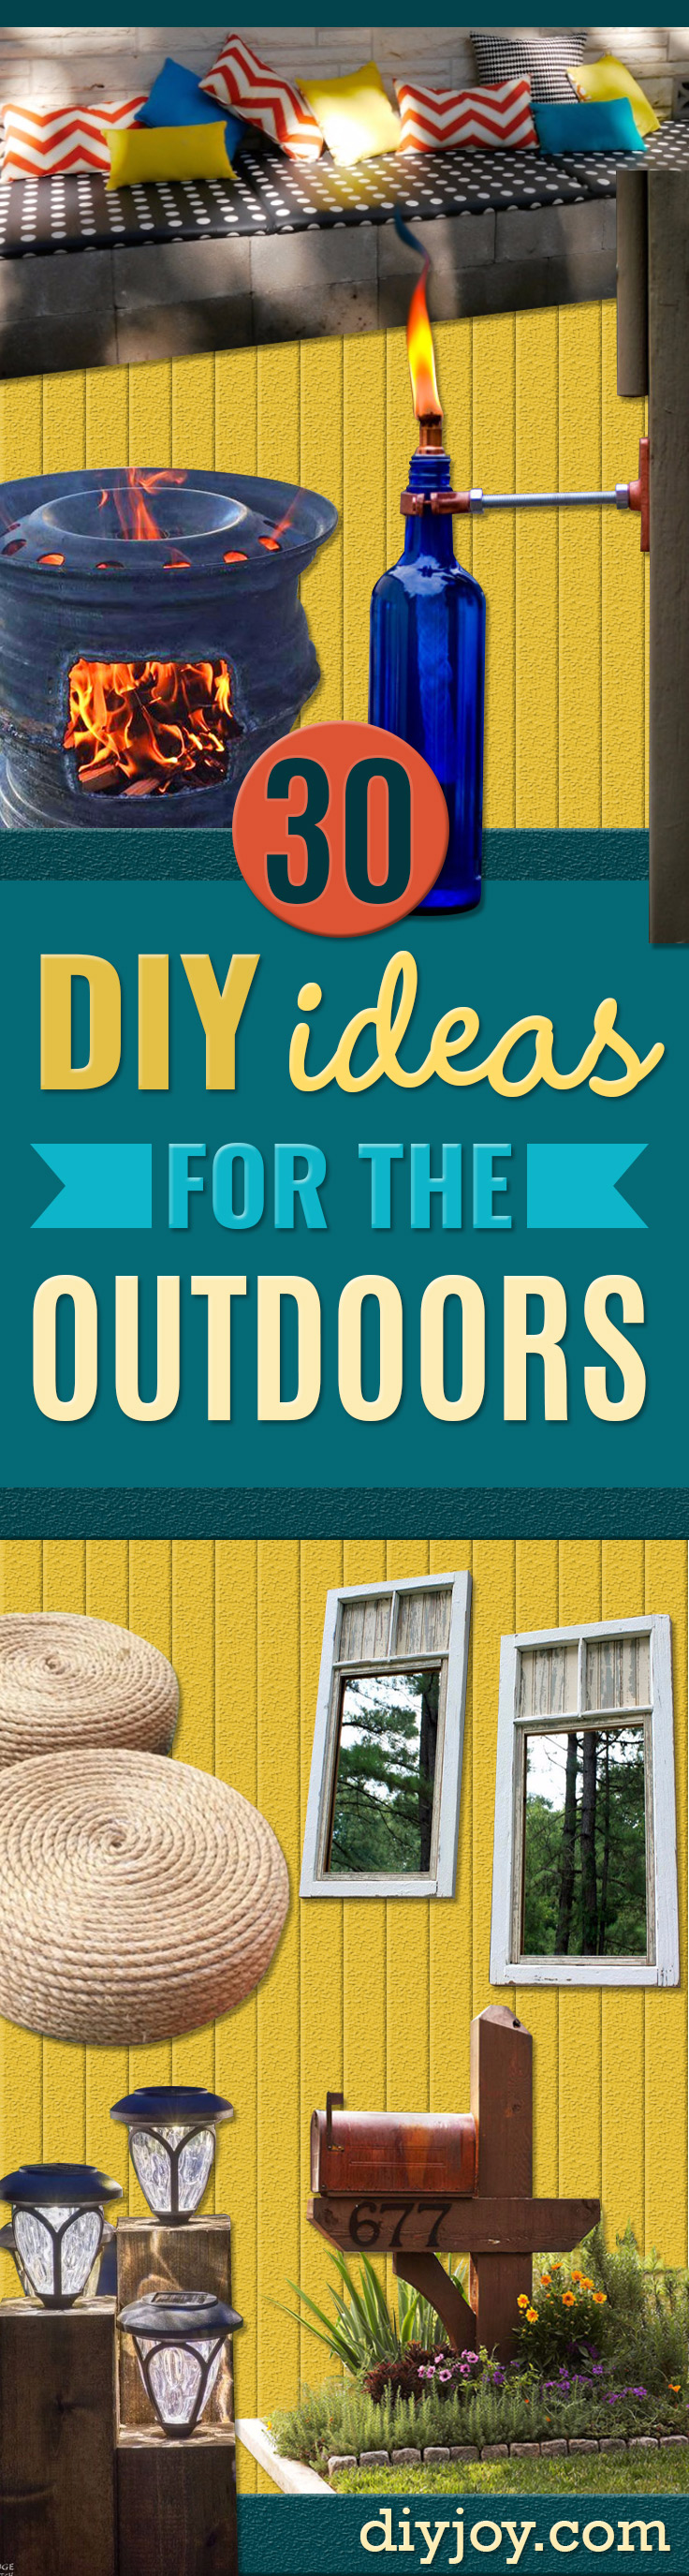 30 Creative DIY Ideas for The Outdoors